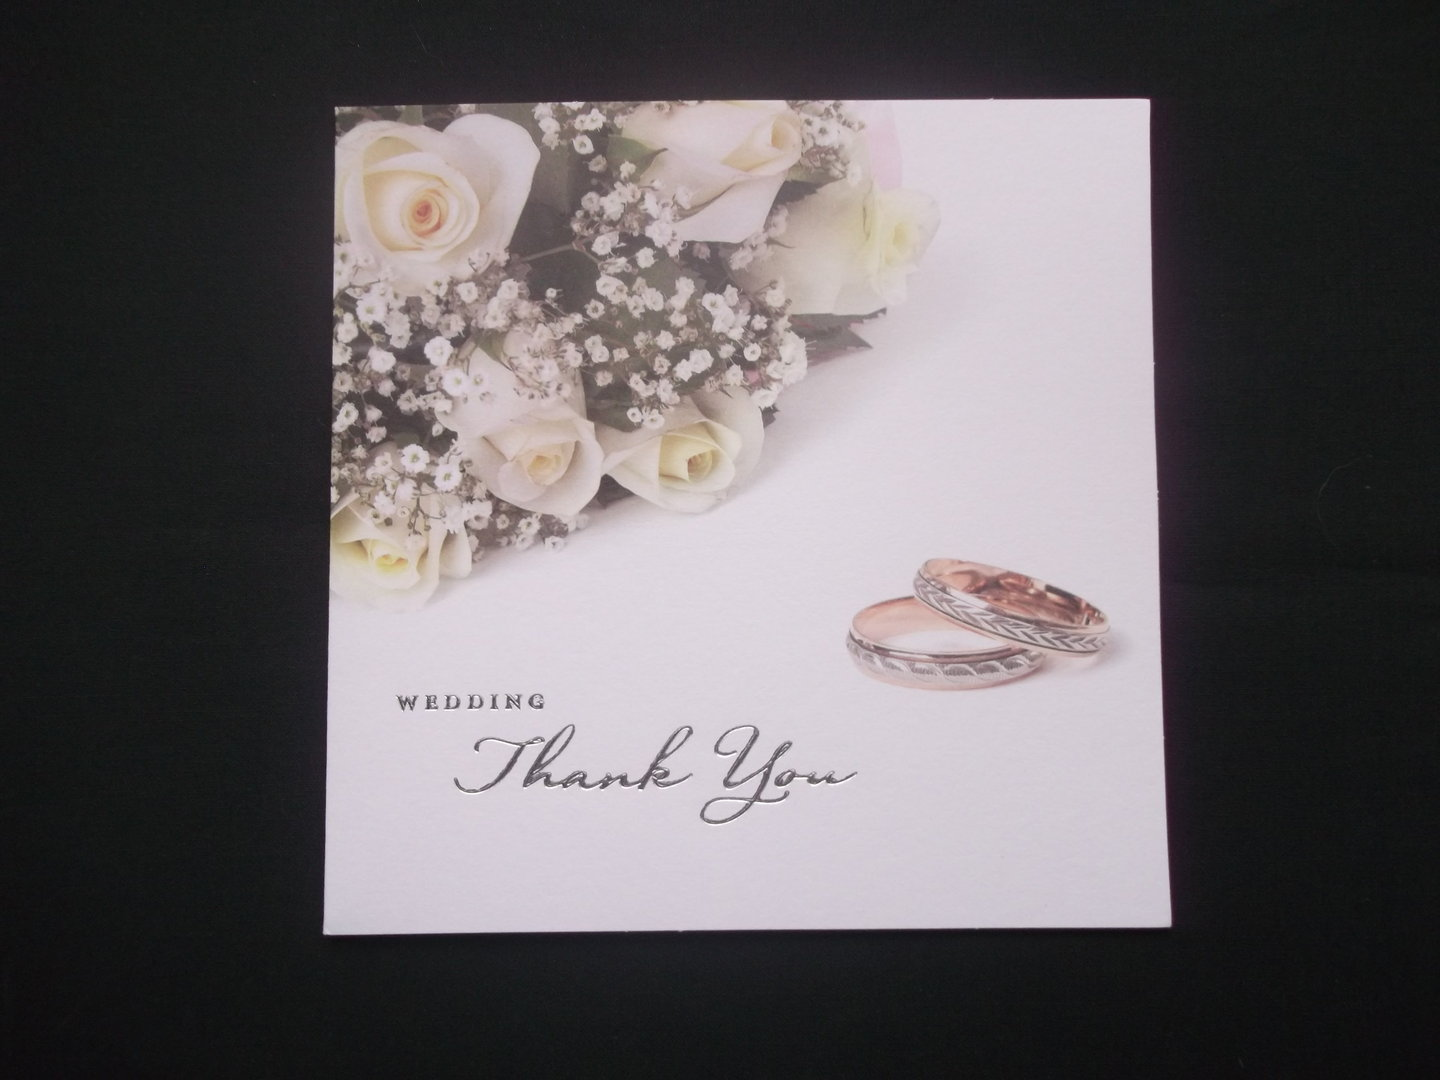 Wedding Gift Thank You Cards